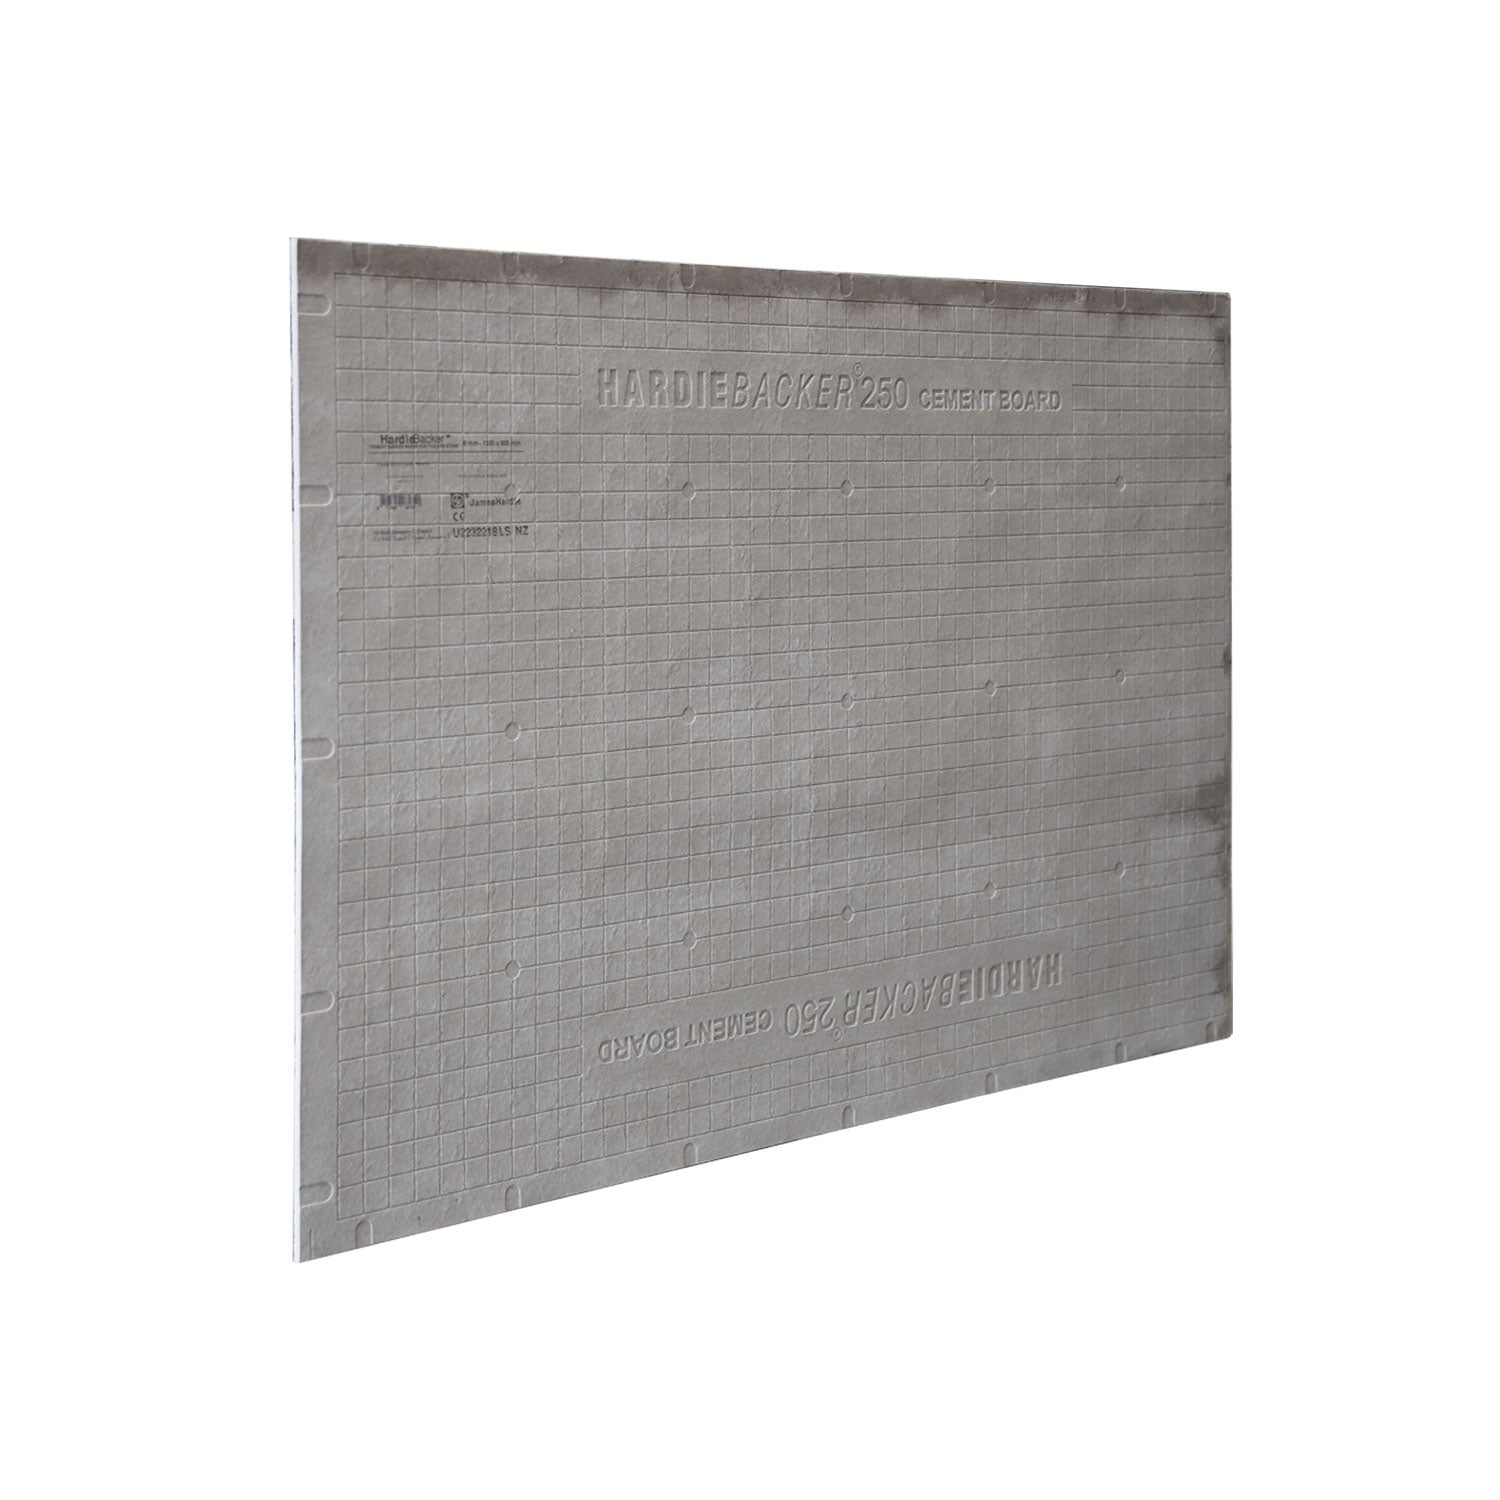 Hardie Backer W/R Tile Backboard 1200 x 800 x 6mm